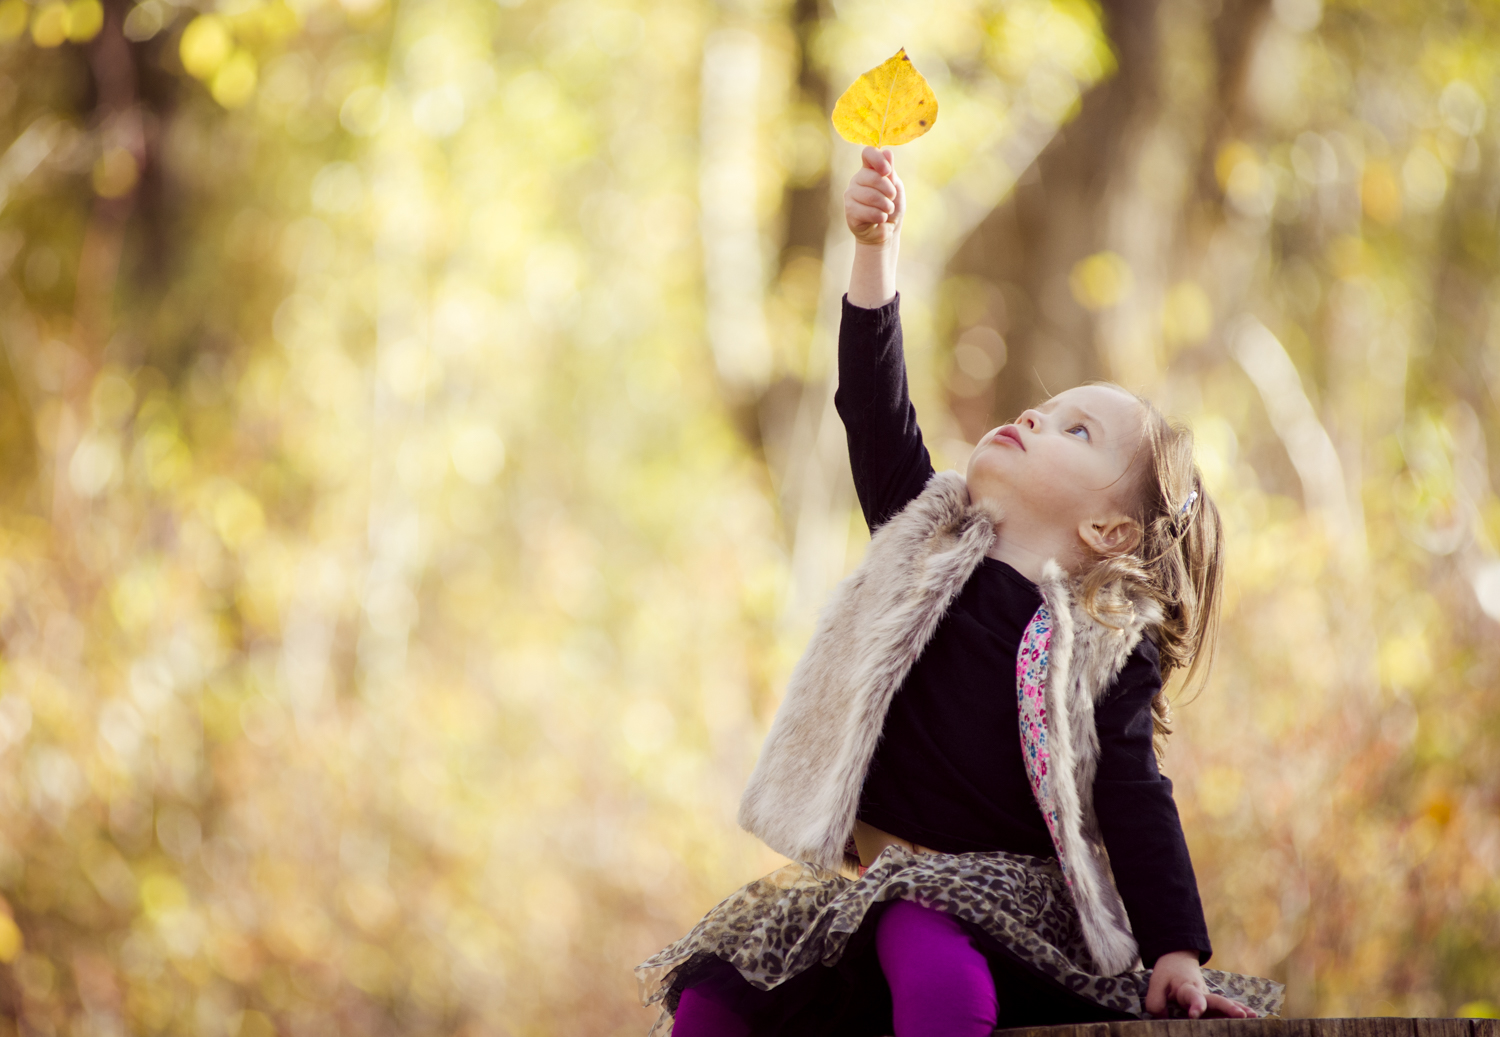 fall_lifestyle_family_leaves_candid_playing-017.jpg